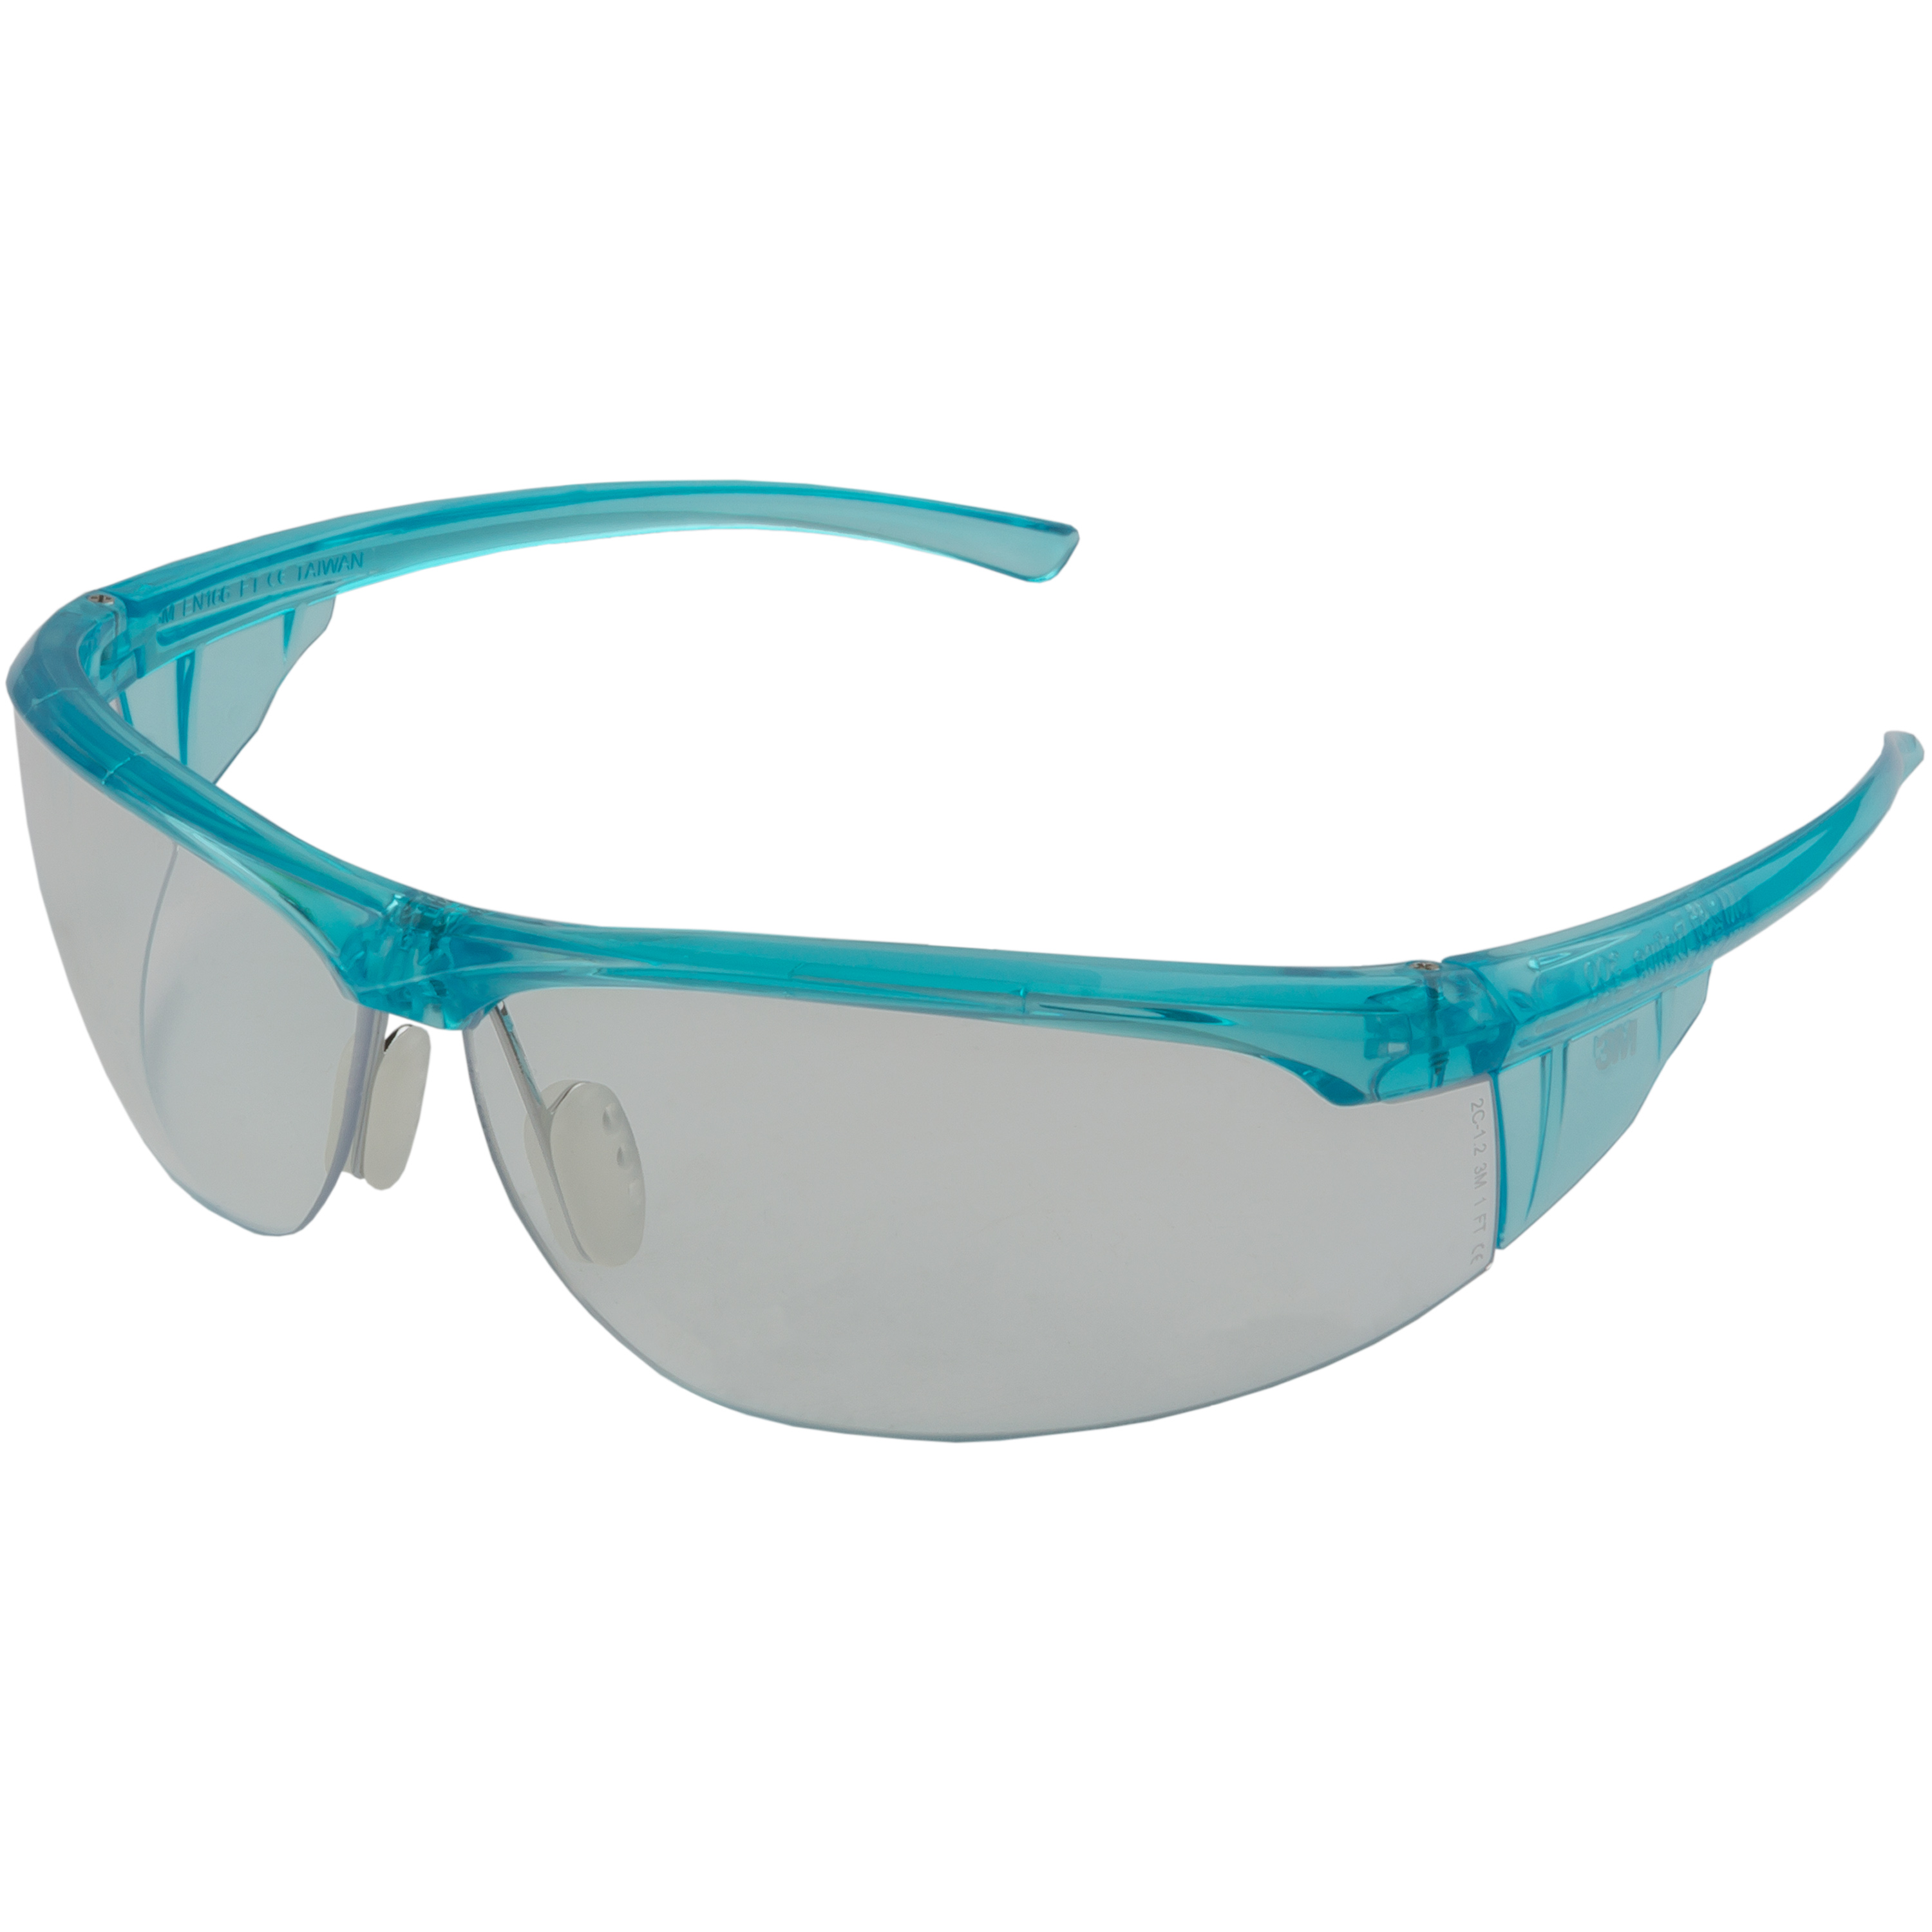 Safety Glasses 3M Refine 300 clear